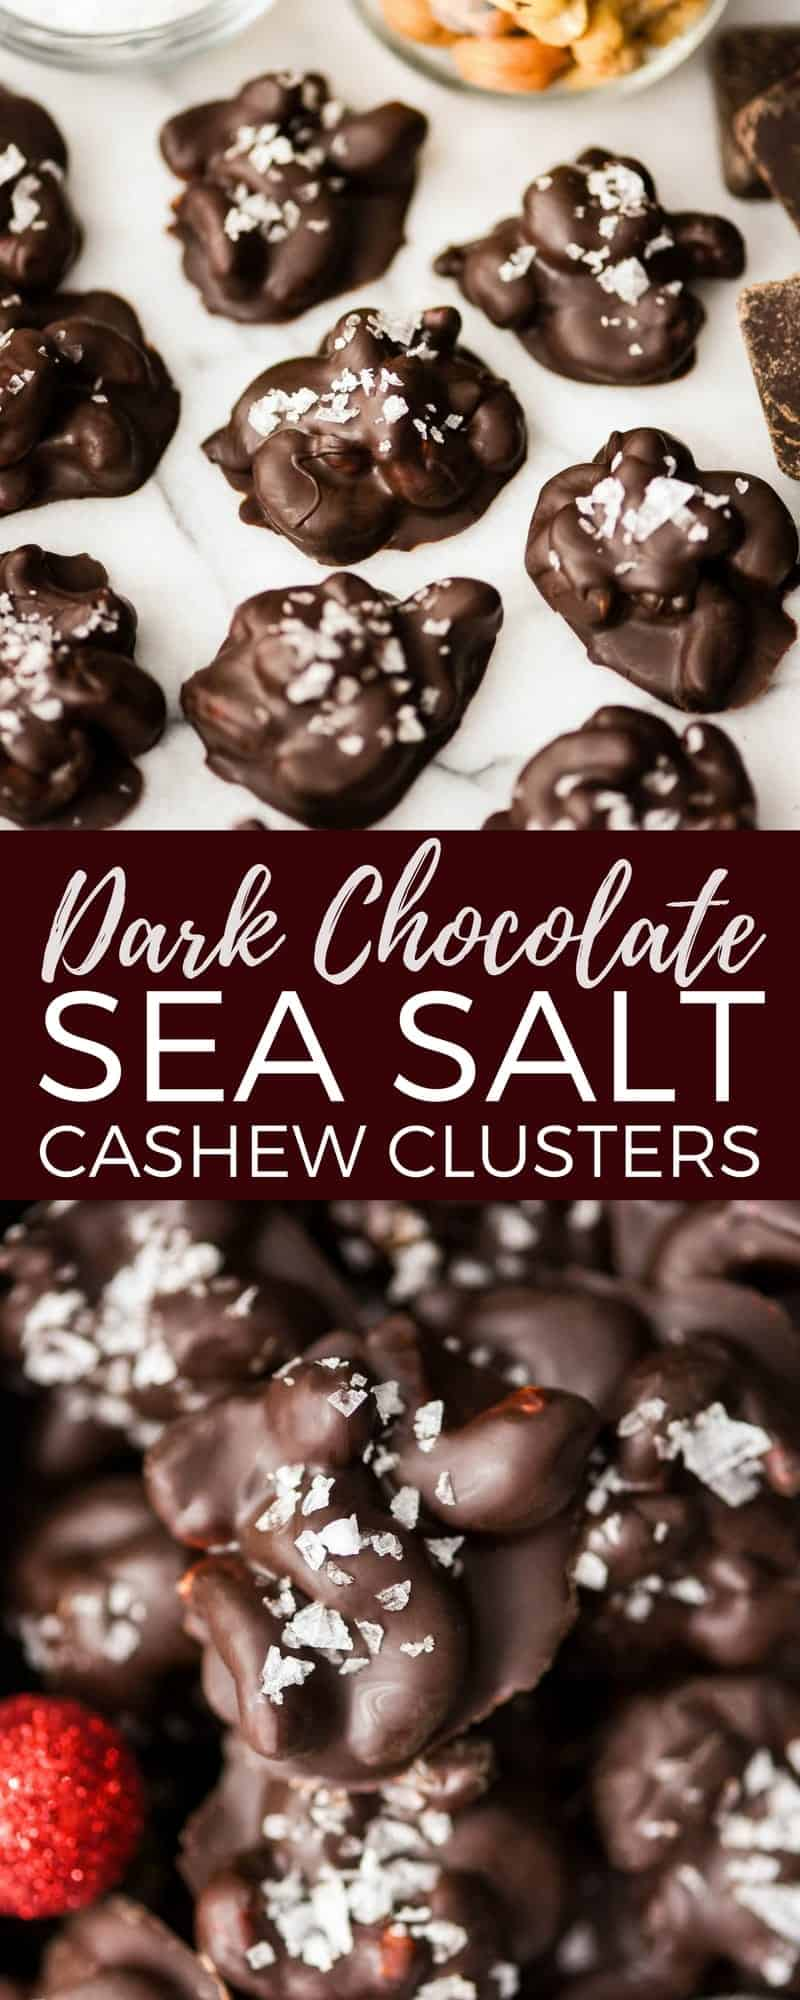 These Dark Chocolate Cashew Clusters with Sea Salt are made with only 3 ingredients and are to die for! An easy & healthy treat for the holidays! #vegan #glutenfree #candy #cashews #darkchocolate #seasalt